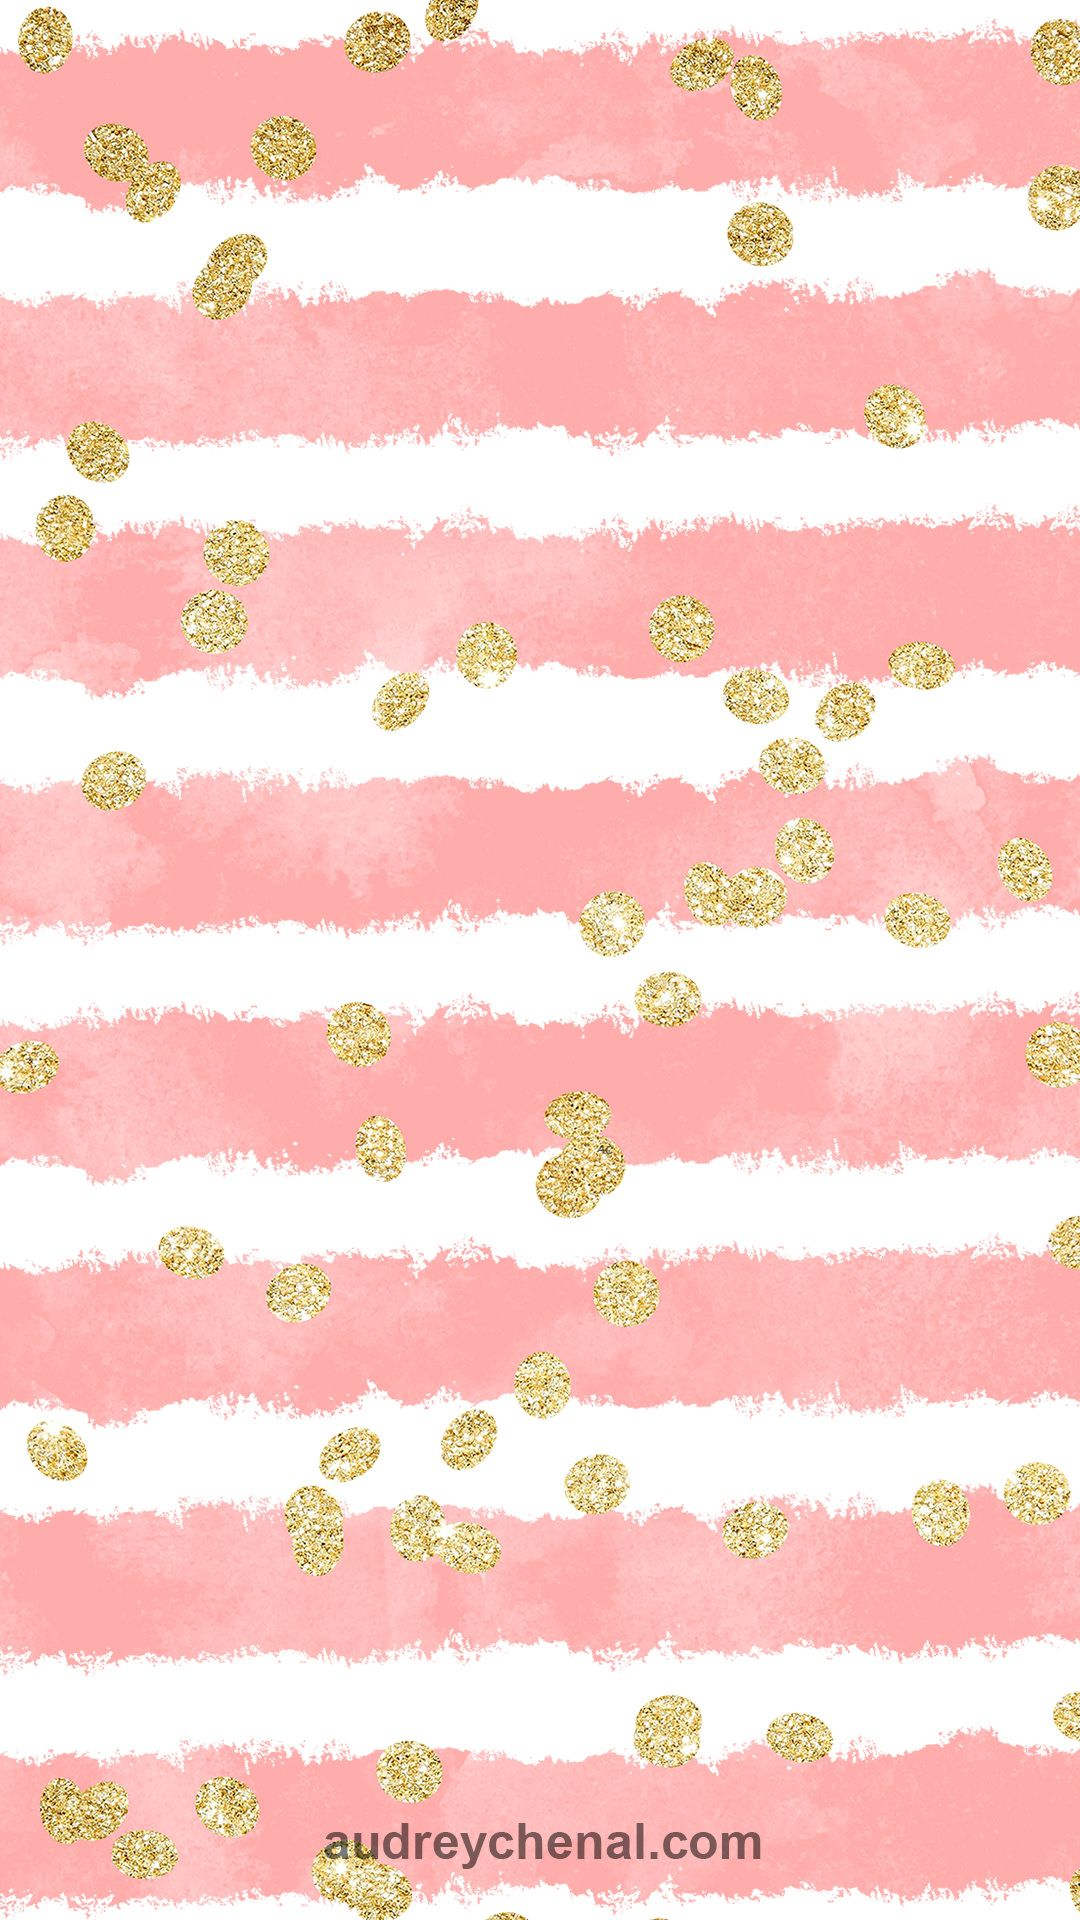 Modern Girly Free Iphone Wallpapers Background Download Free Iphone Wallpaper Gold Art Print Gold Wallpaper Phone